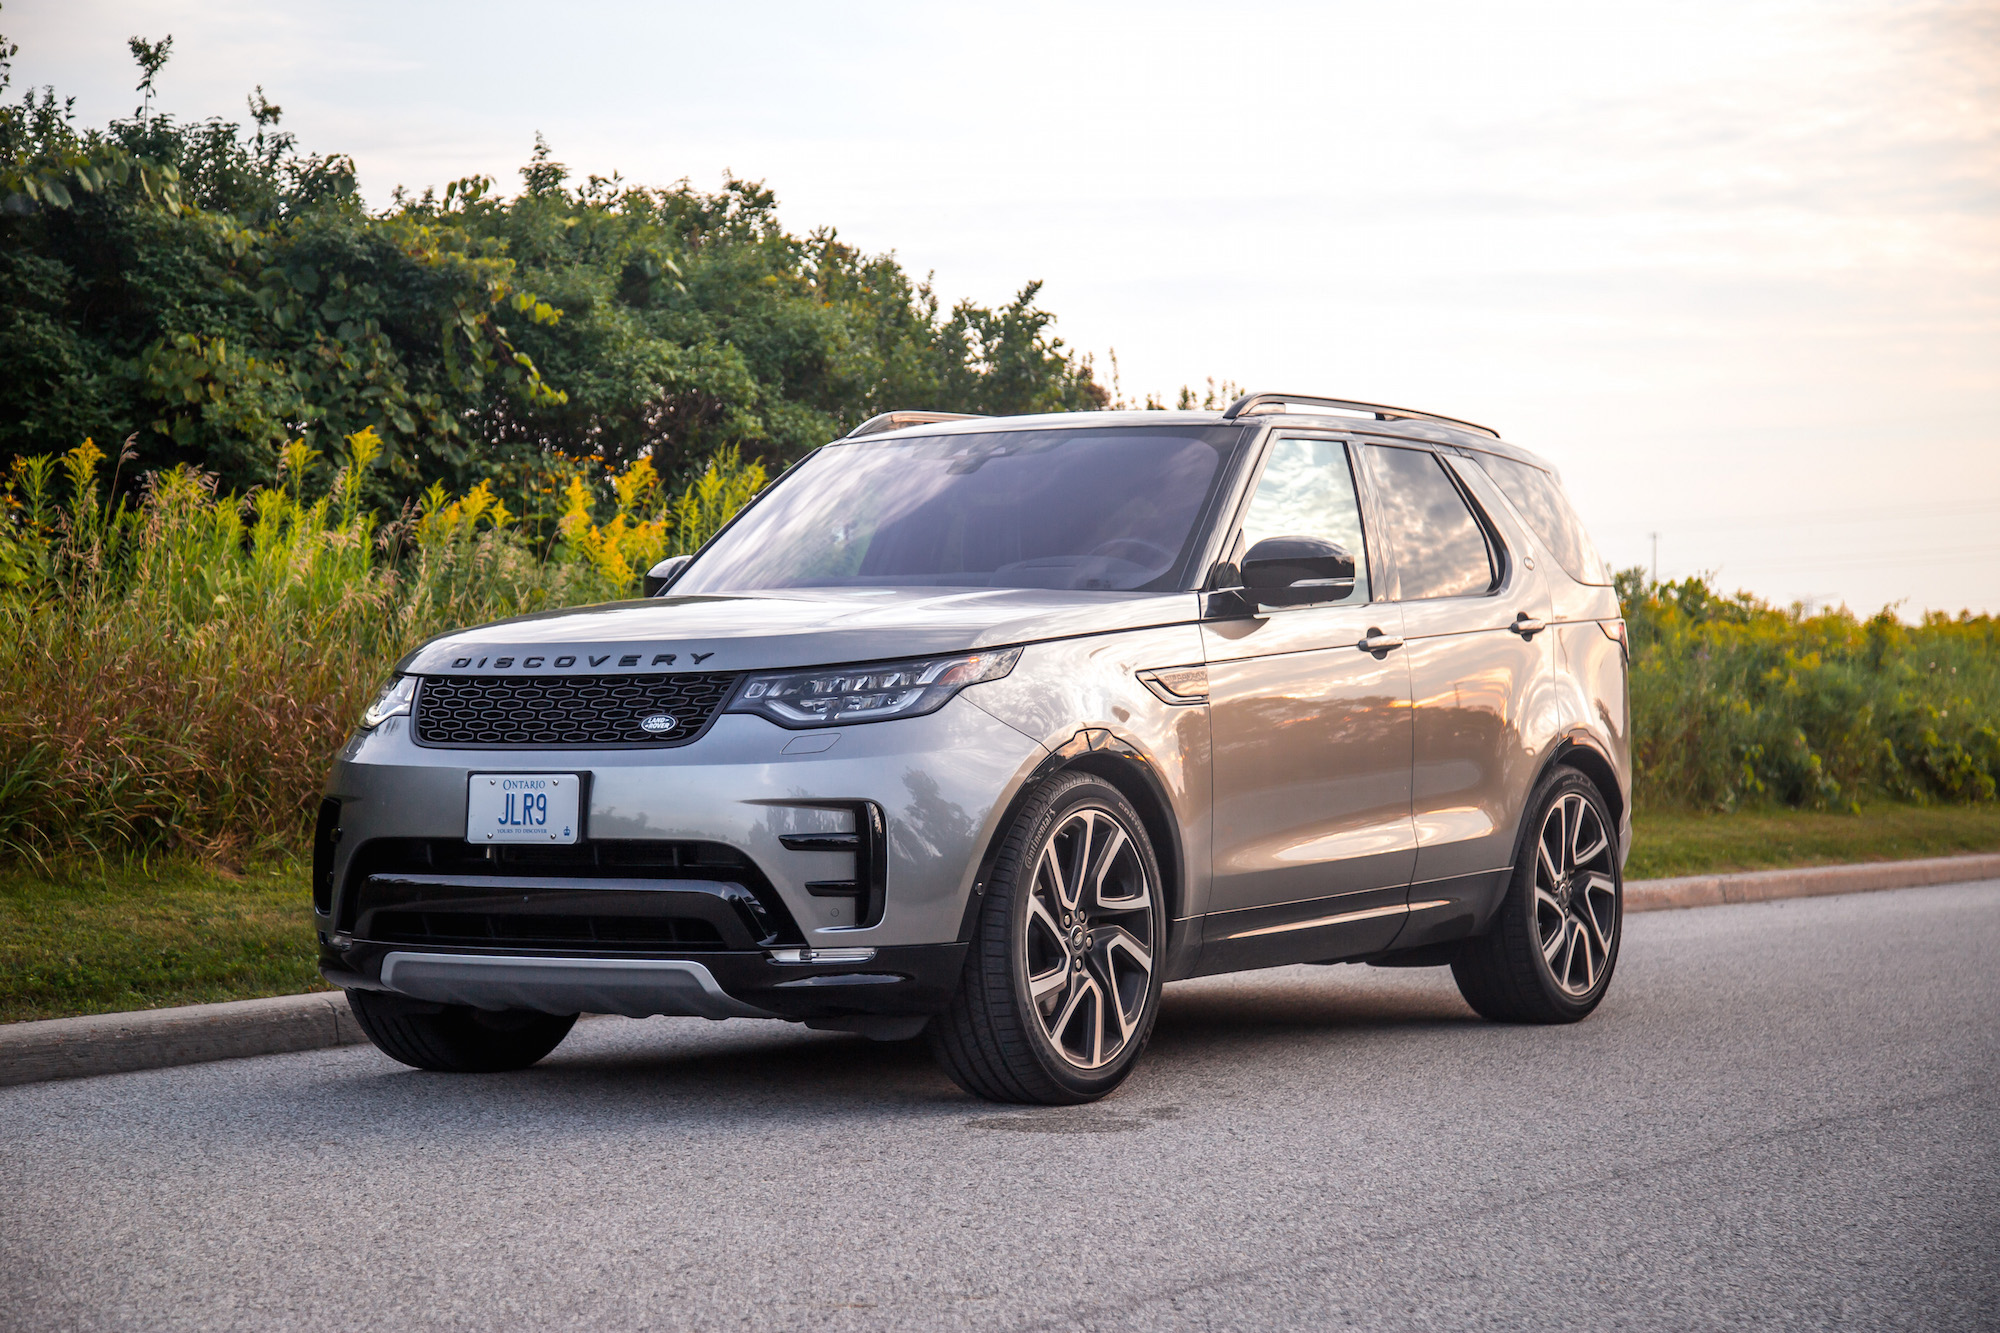 2019 Land Rover Discovery: New Car Review - Autotrader